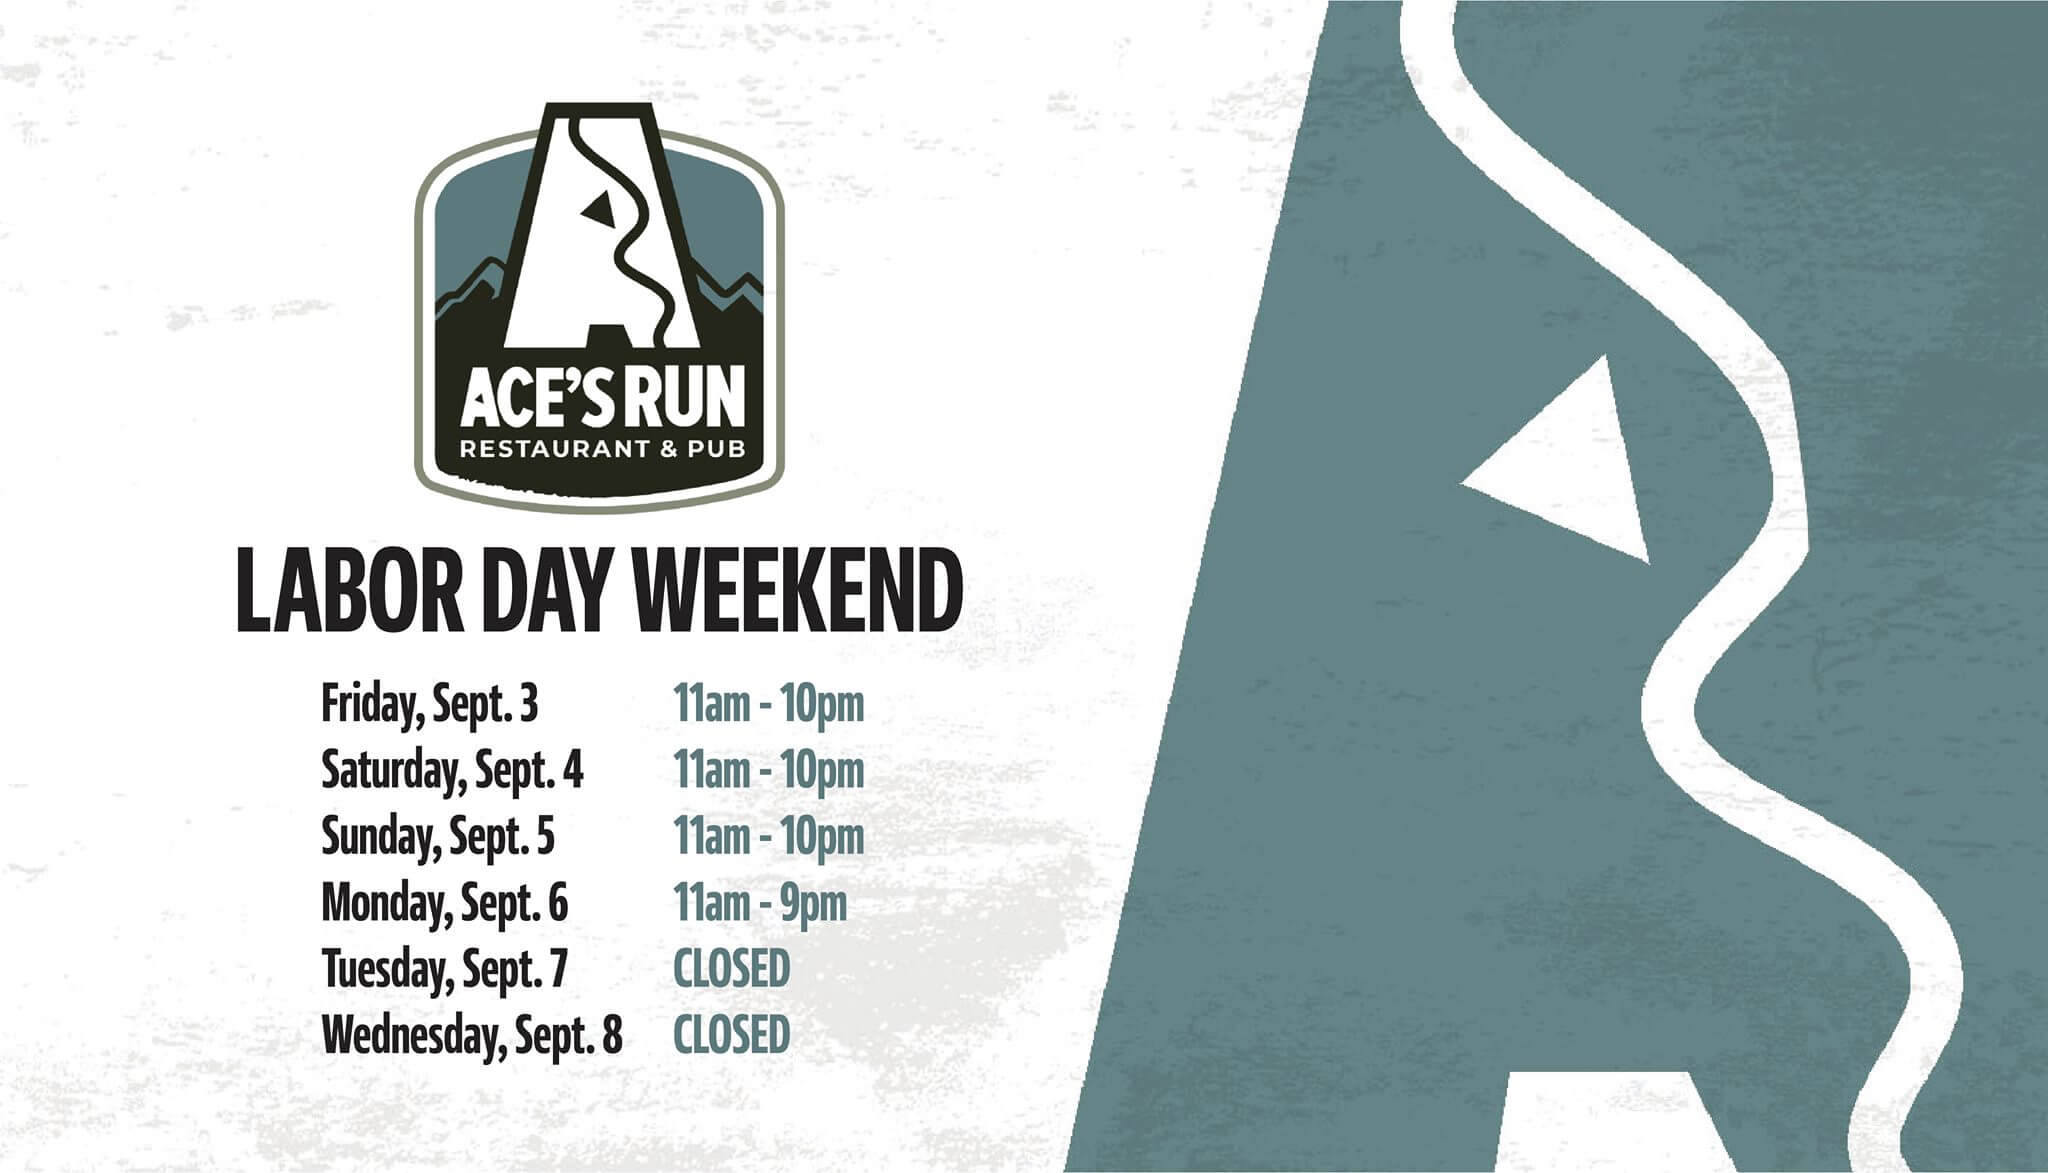 Ace's Run Restaurant and Pub - Labor Day Weekend Schedule